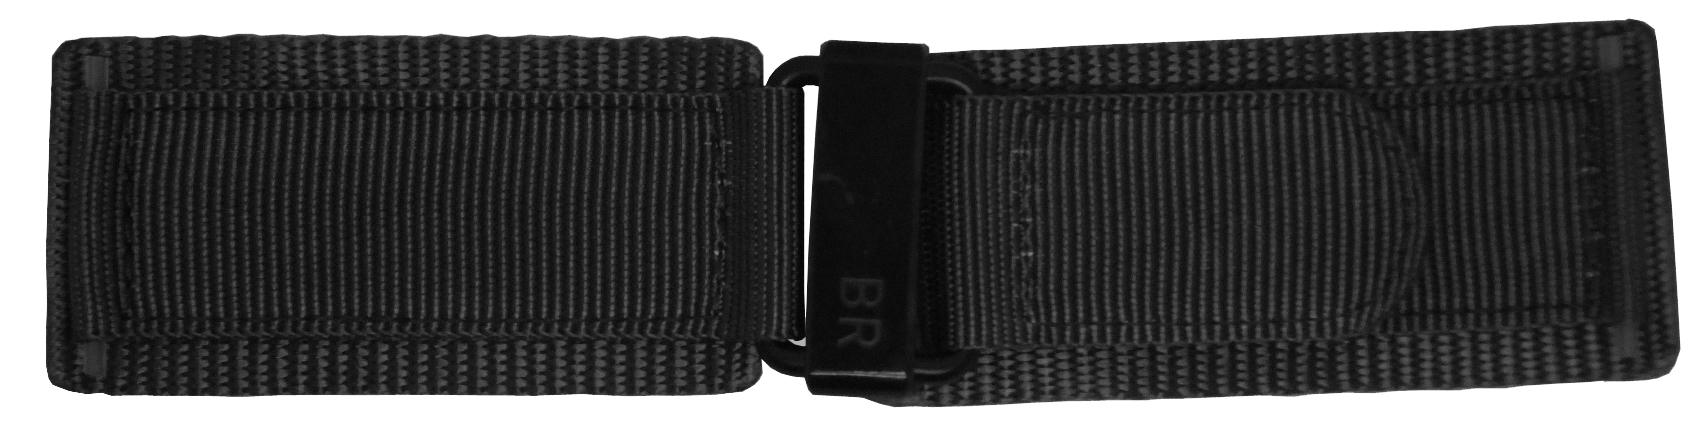 Image of Bell & Ross 24mm Black Canvas Strap 24-6-BLKC-BV